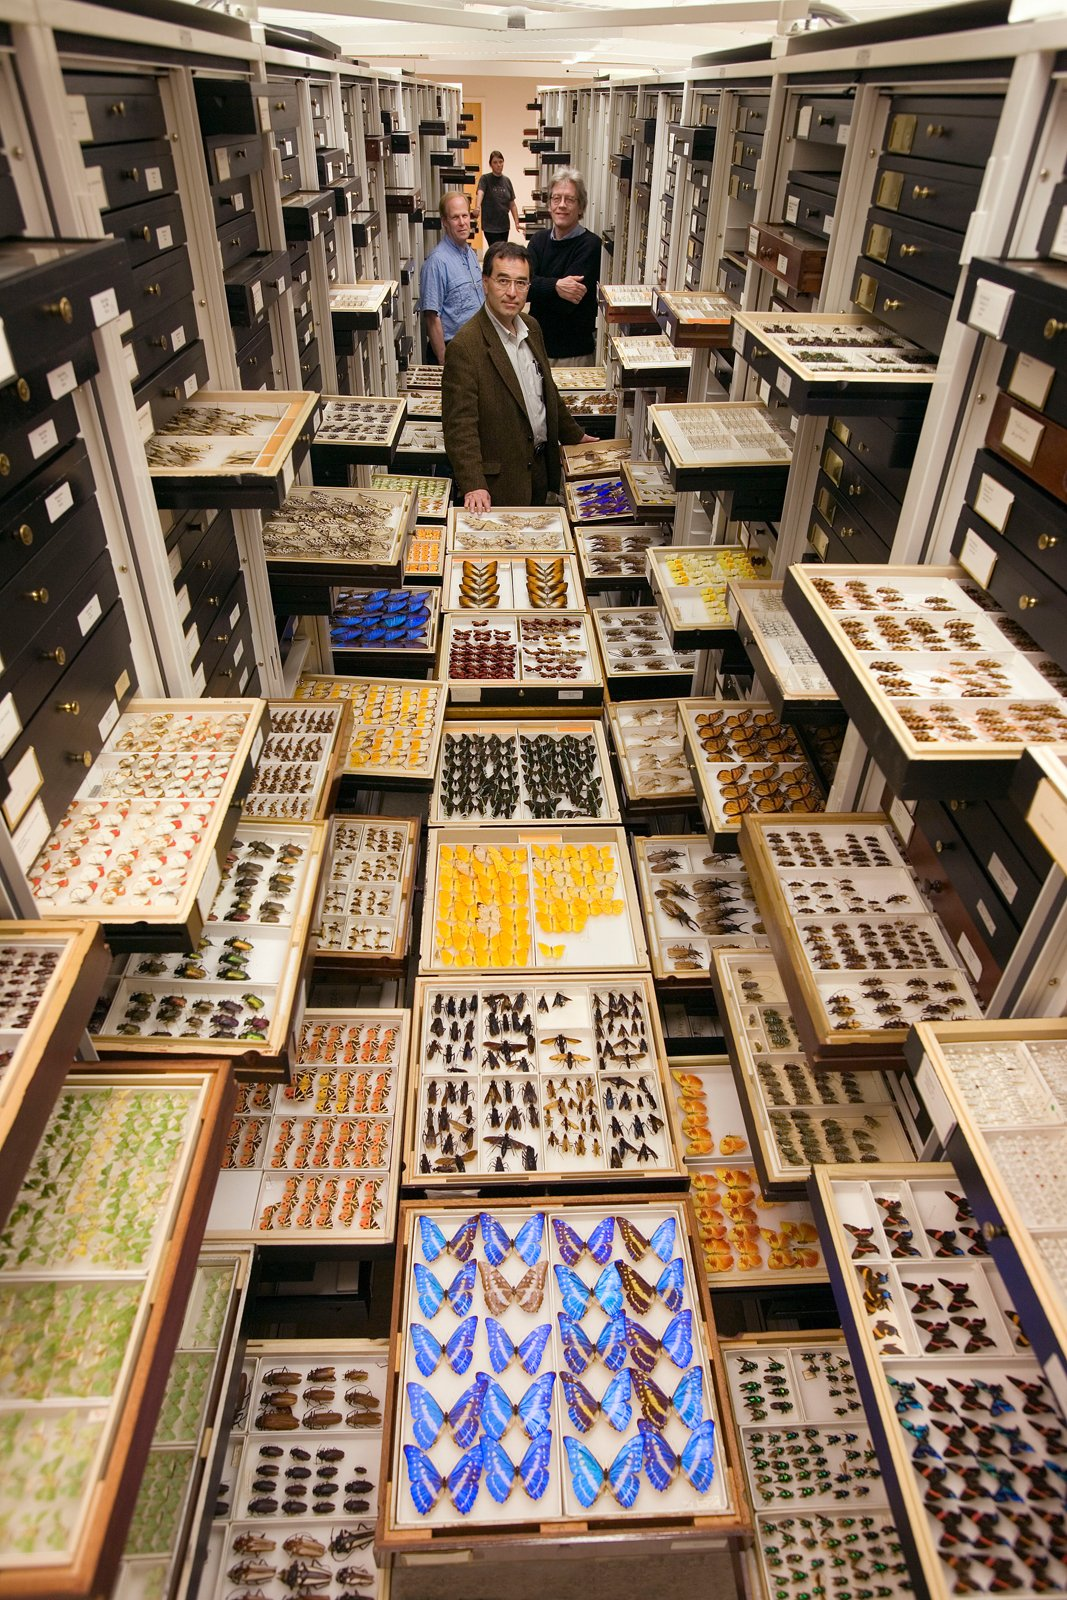 Entomology staff stand among millions of insects in the Smithsonian collection. Photo by Chip Clark.